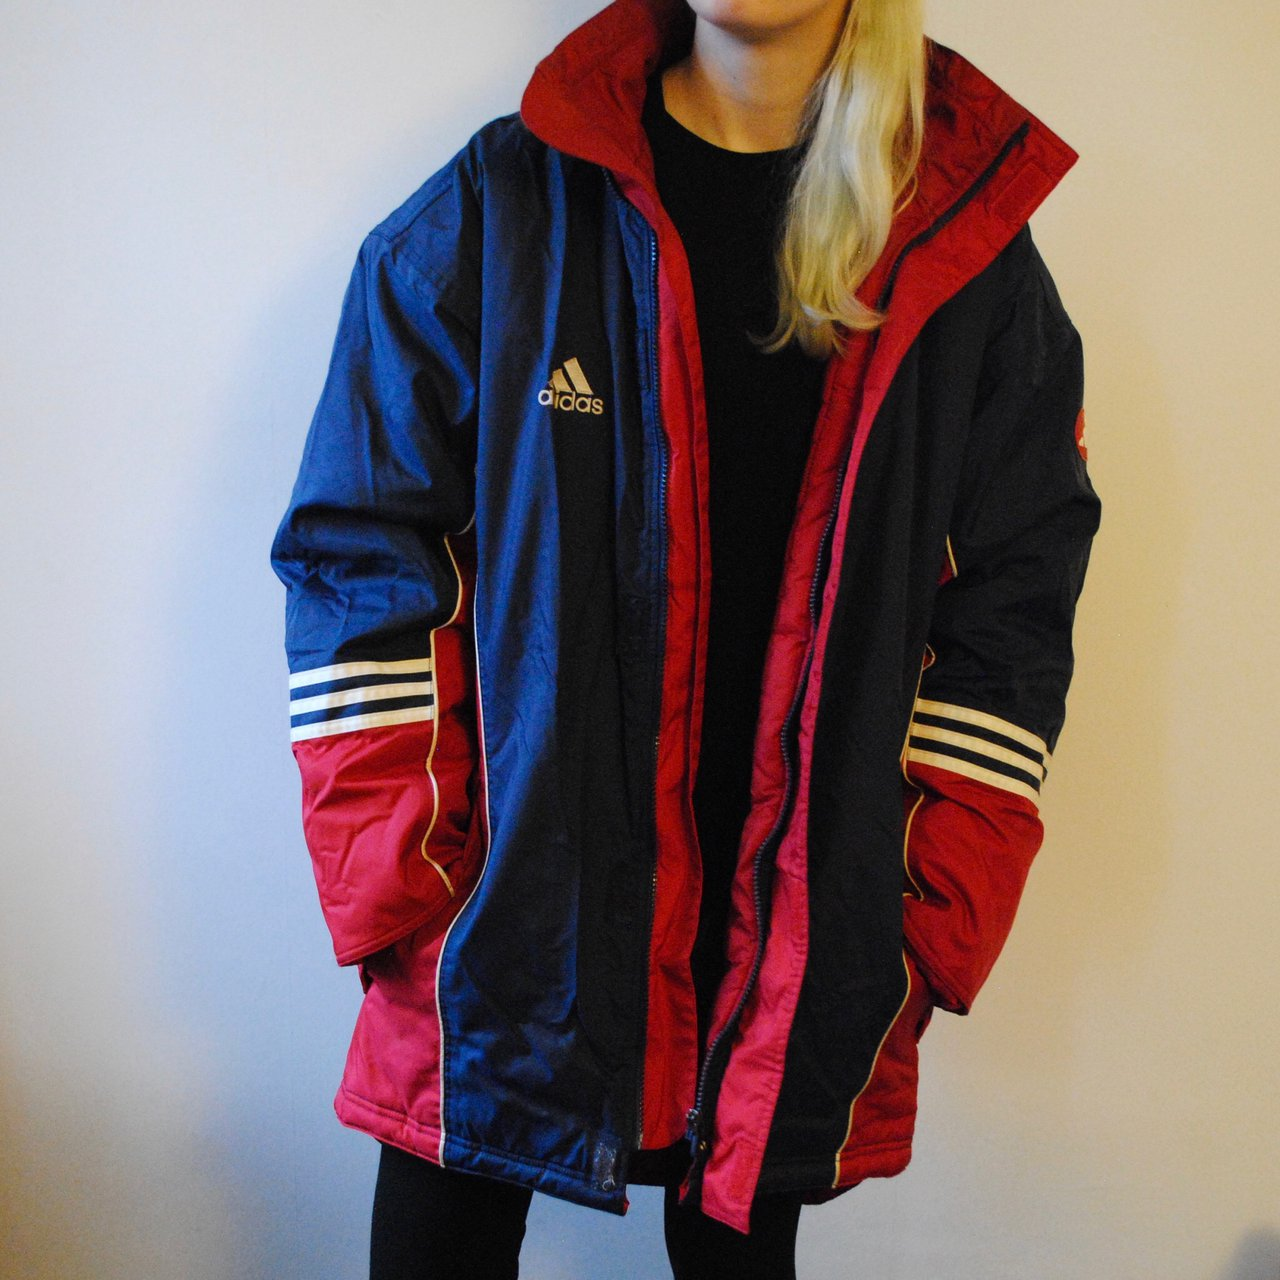 9d8ceb36cb Rare vintage Adidas winter coat from the 90 s